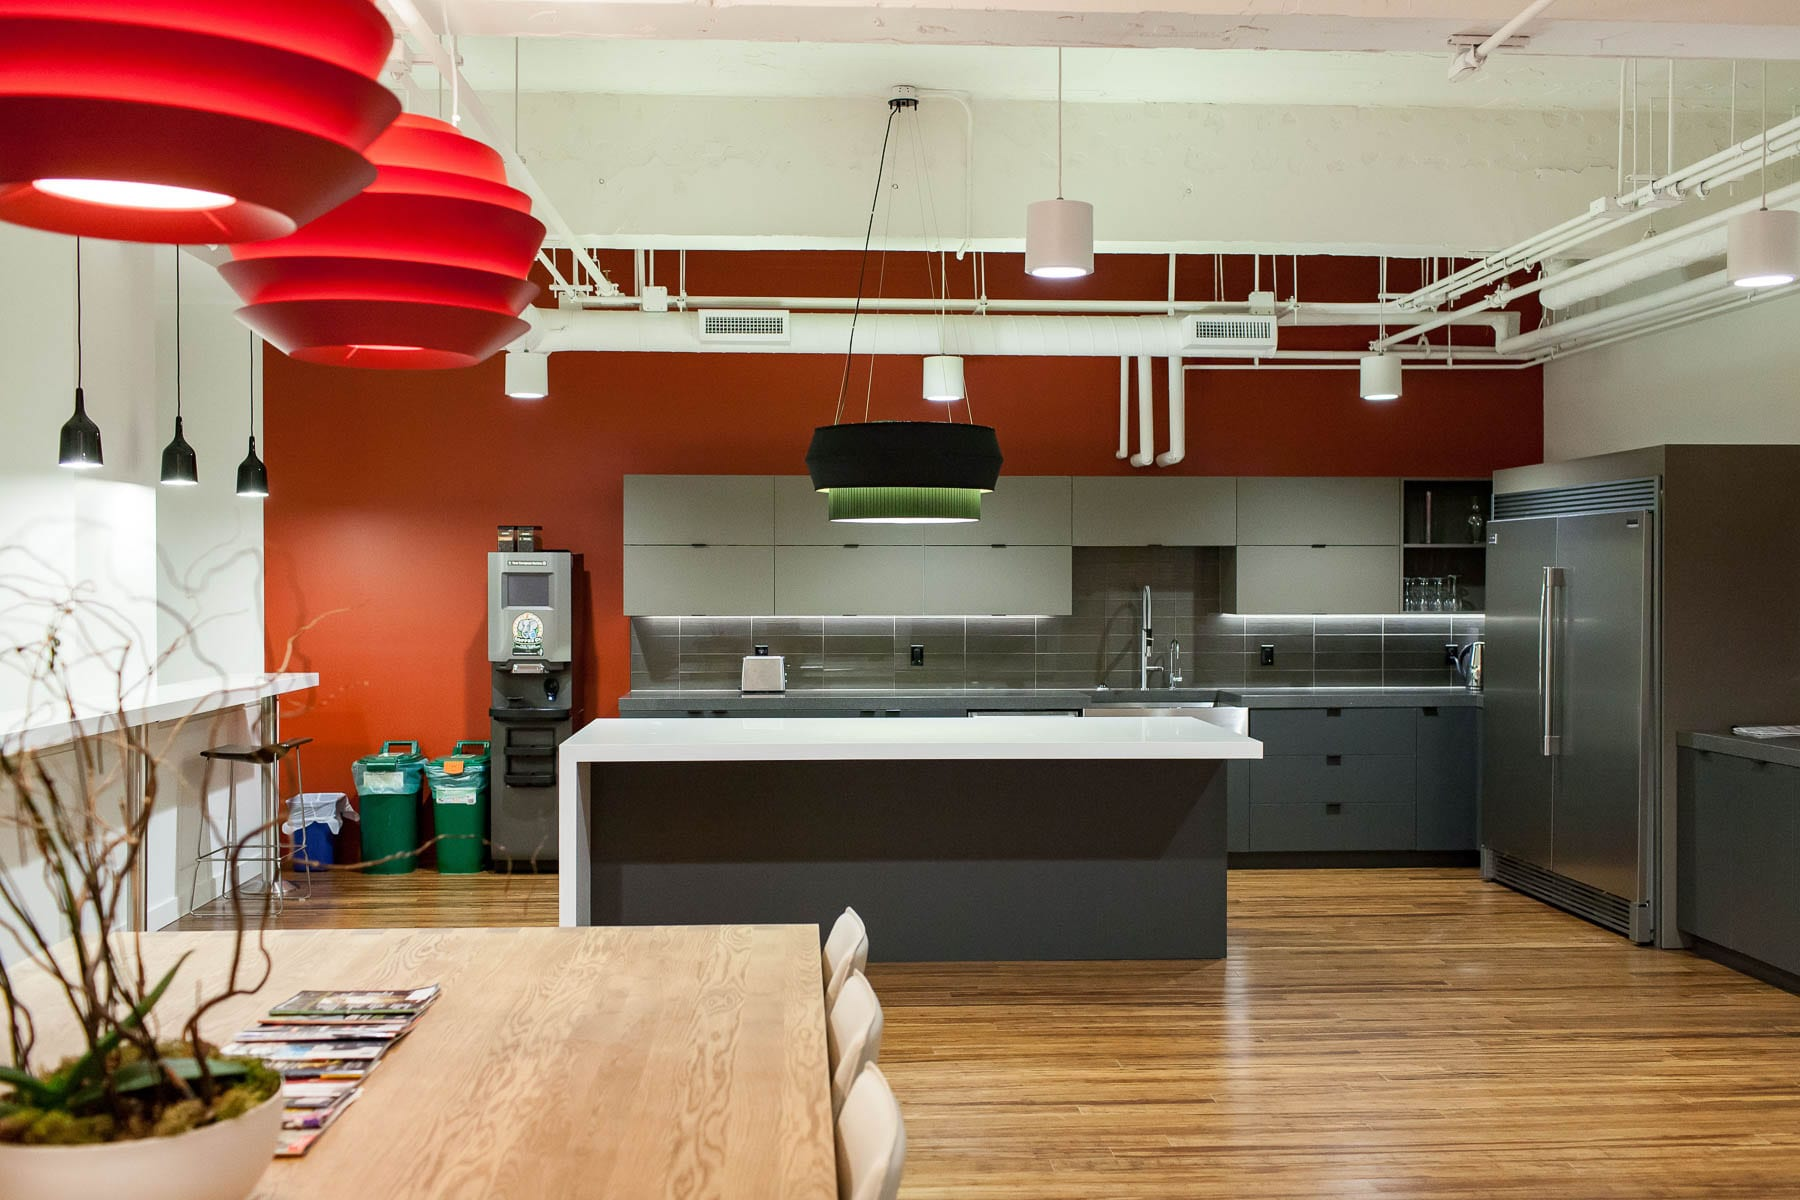 MIABC office's interior improvements - kitchen with exposed ceiling and painted white